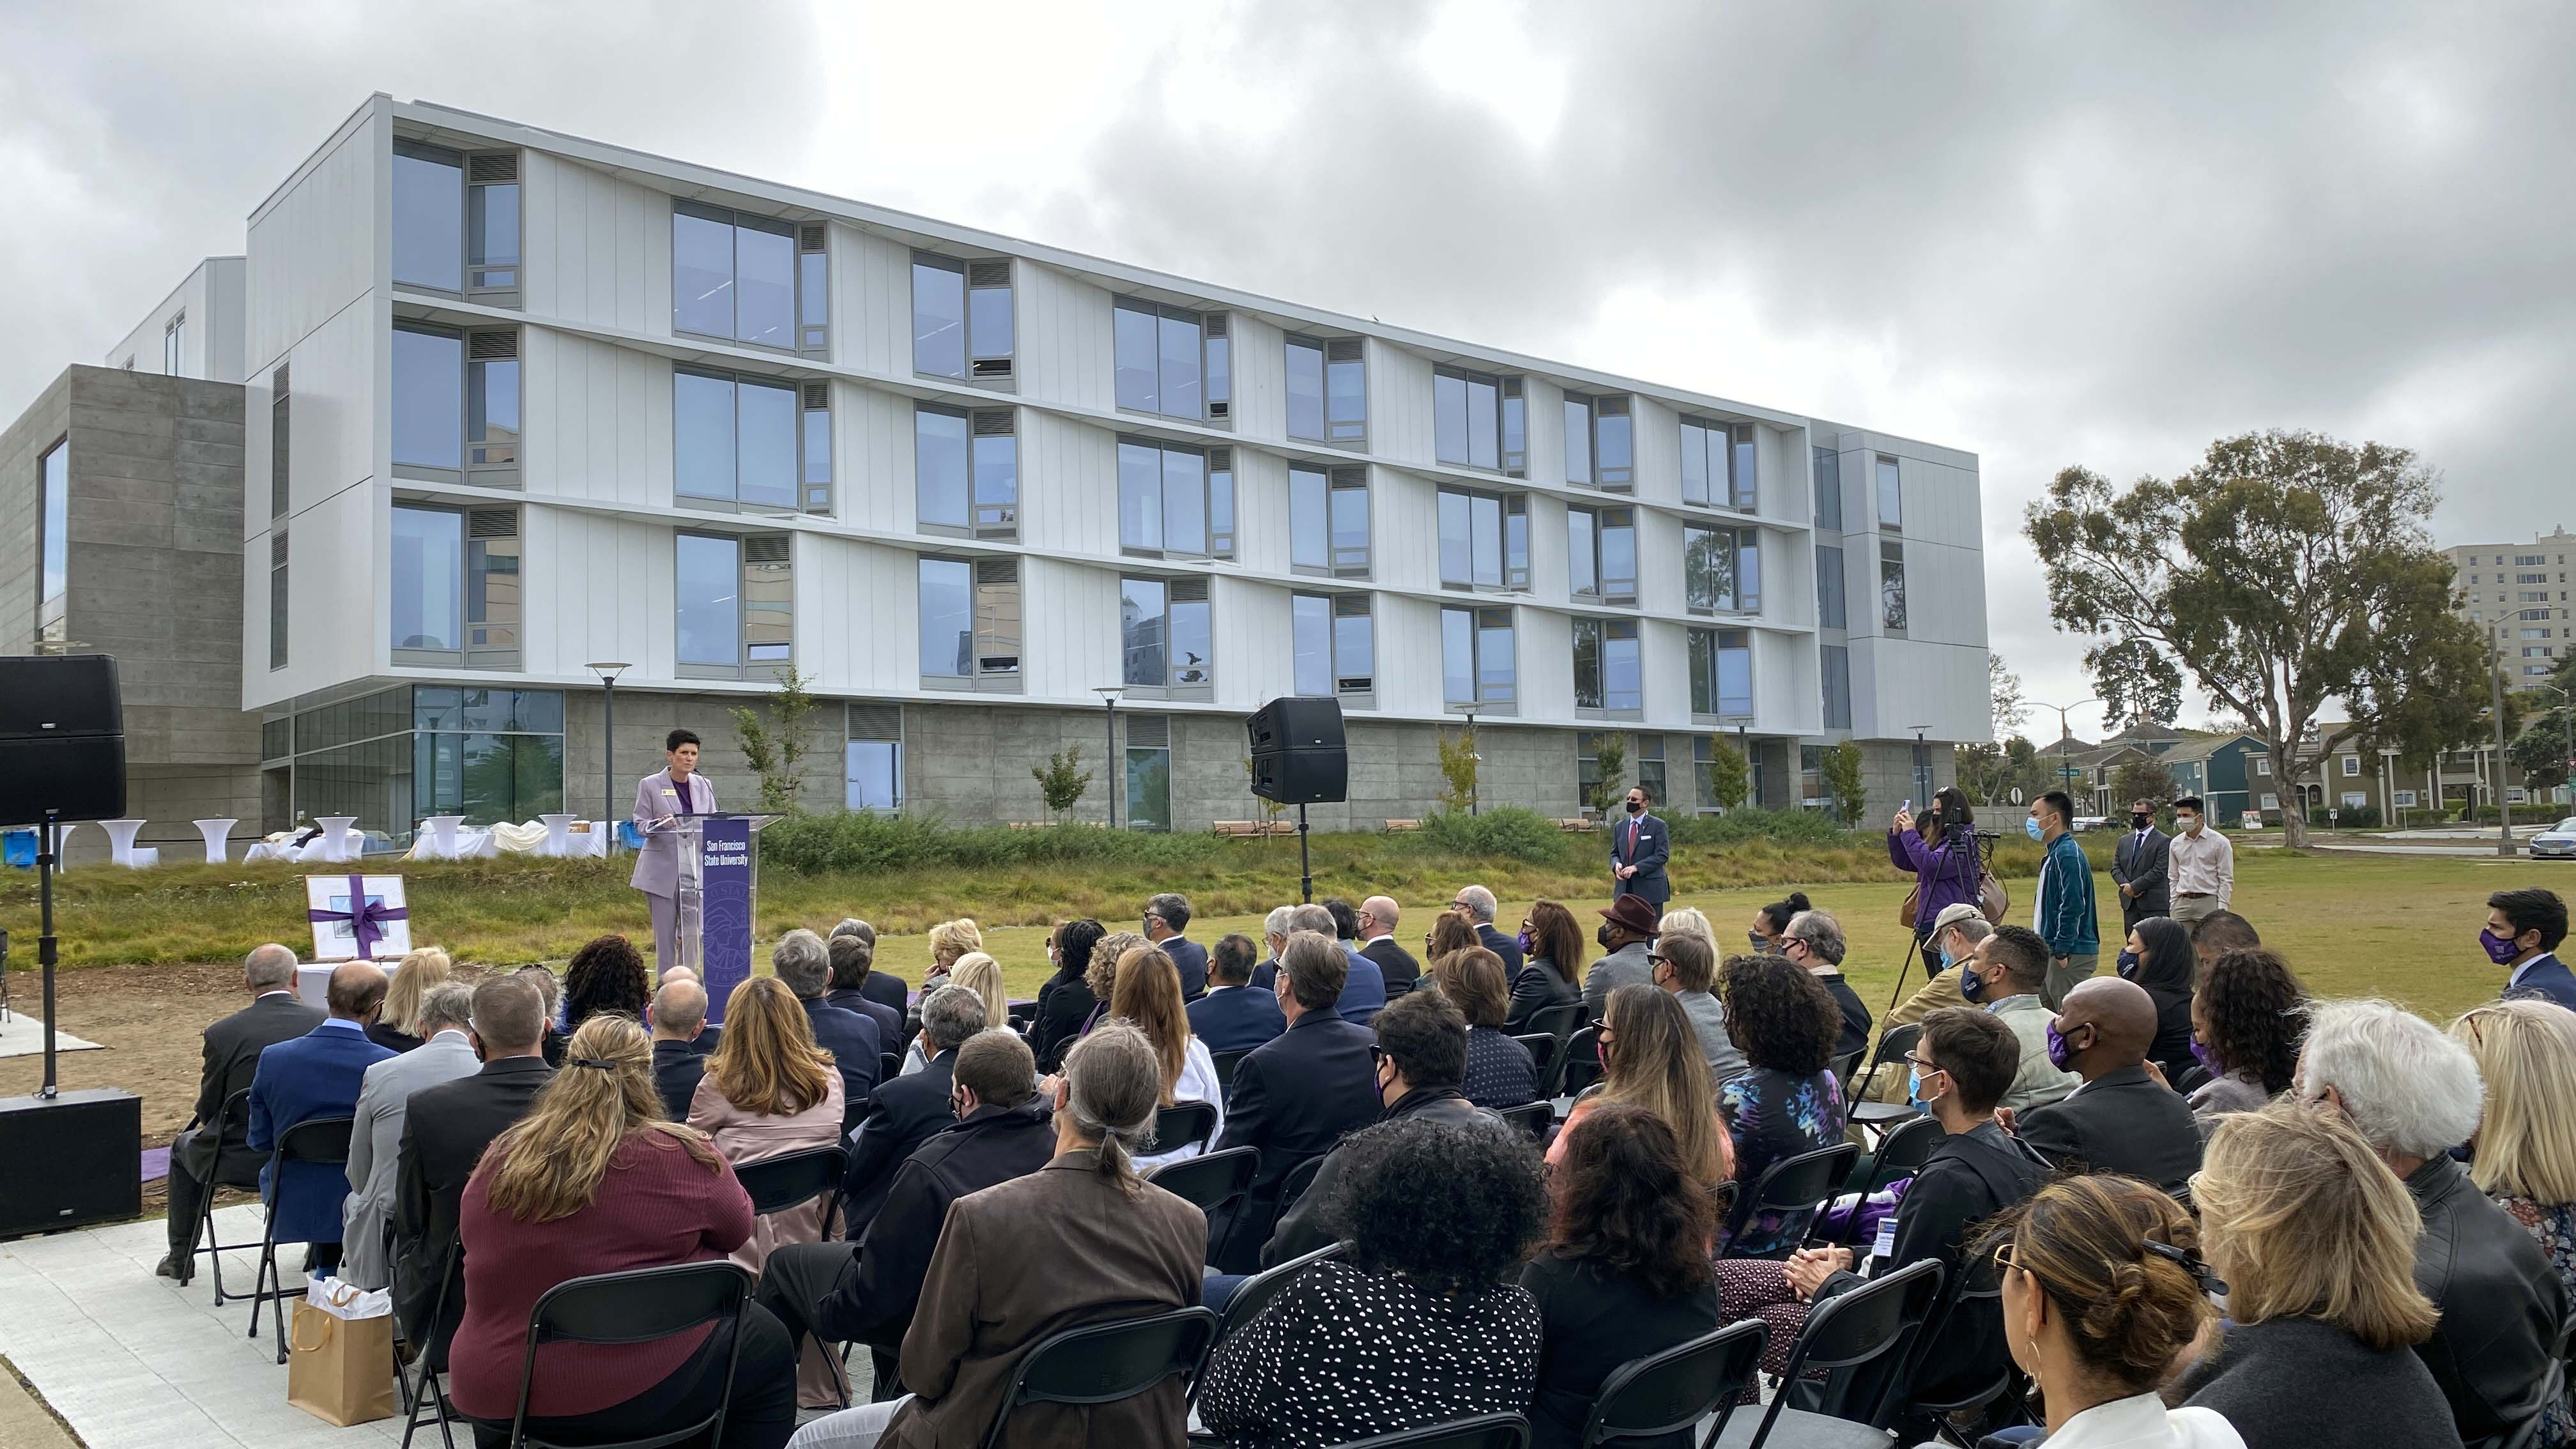 Lynn Mahoney, Ph.D., president of San Francisco State University, speaks at the opening of Marcus Hall